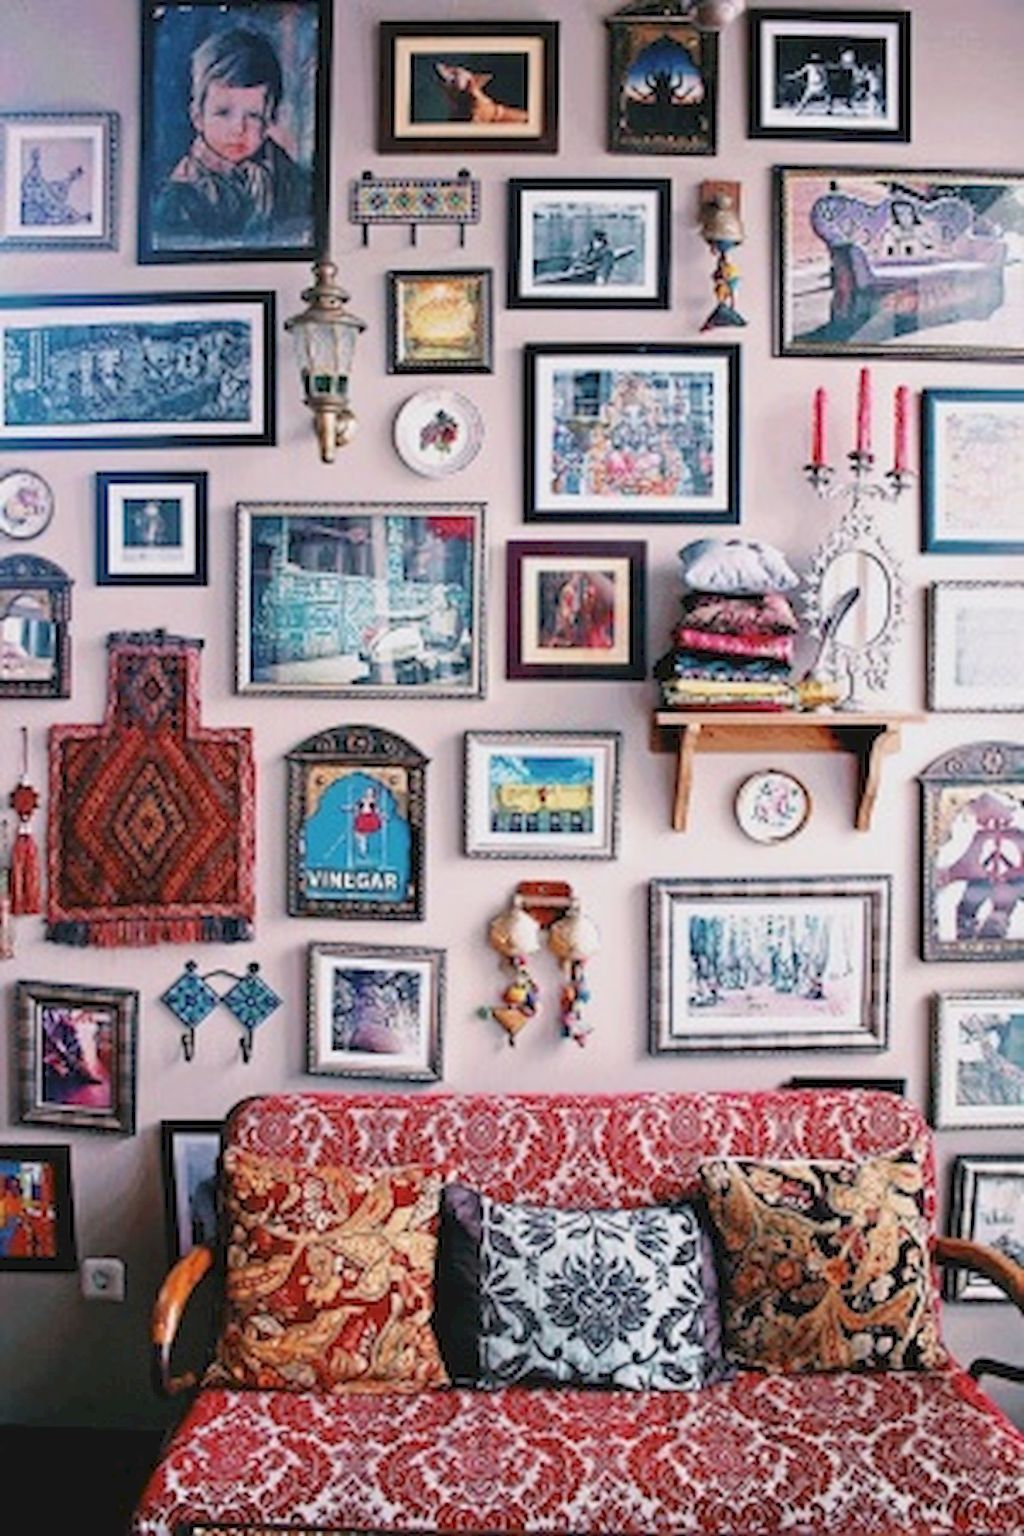 50 Diy First Apartment Ideas On A Budget With Boho Wall Decor Eclectic Home Boho Wall Decor Eclectic Decor